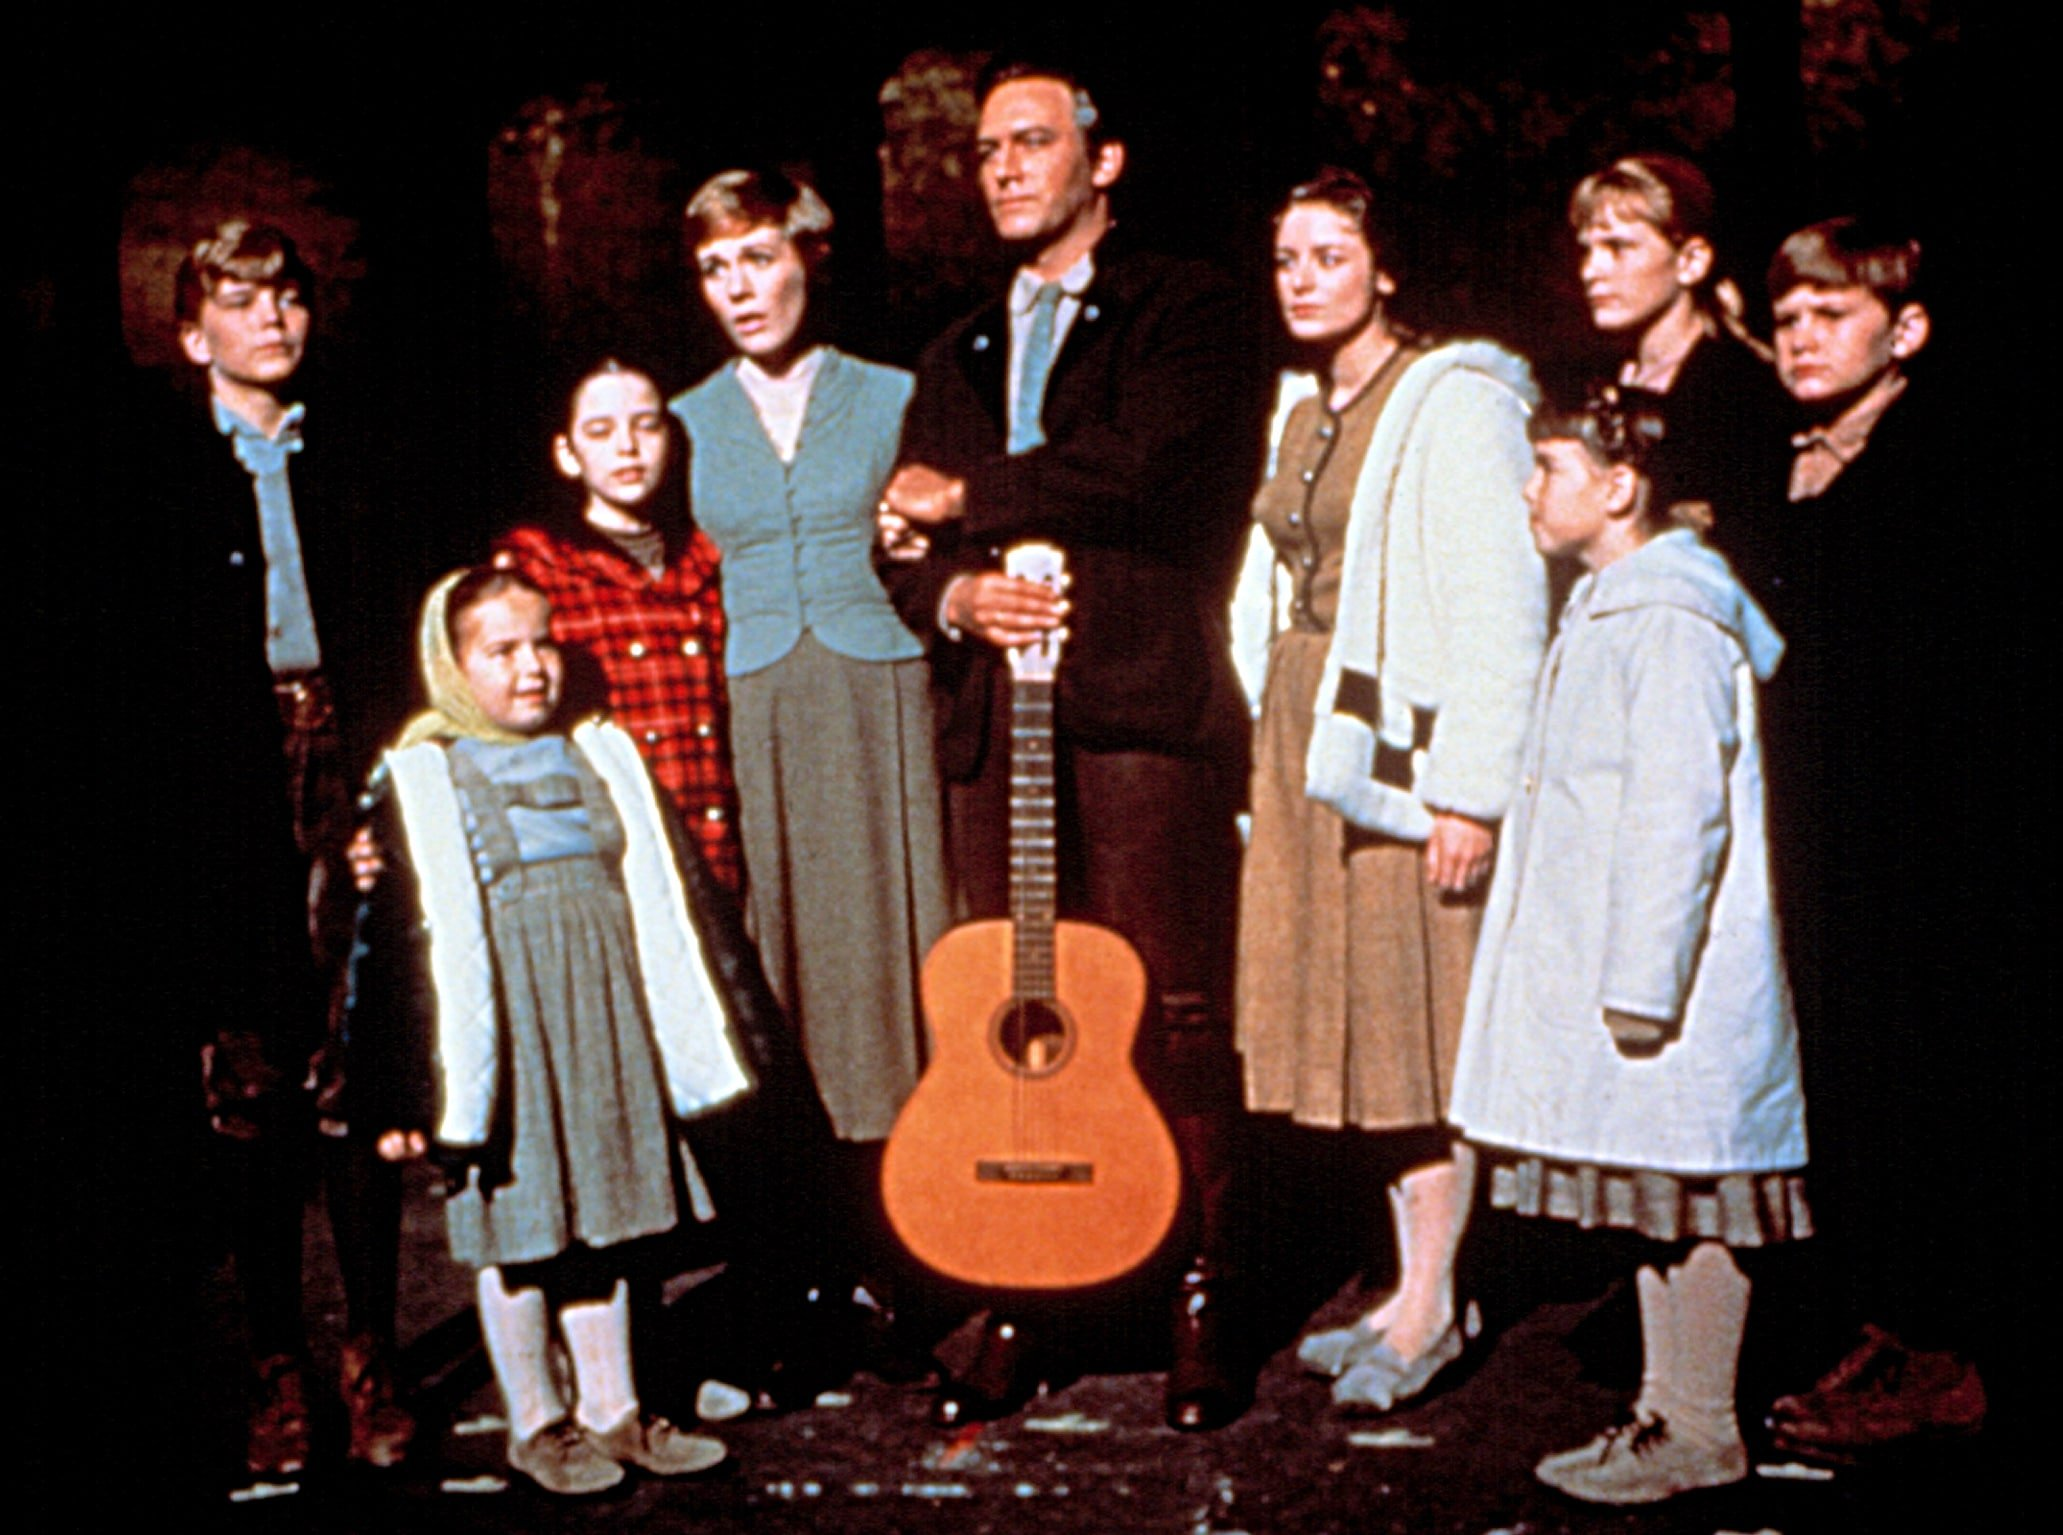 How 'The Sound Of Music' Film Is Actually Historically Inaccurate